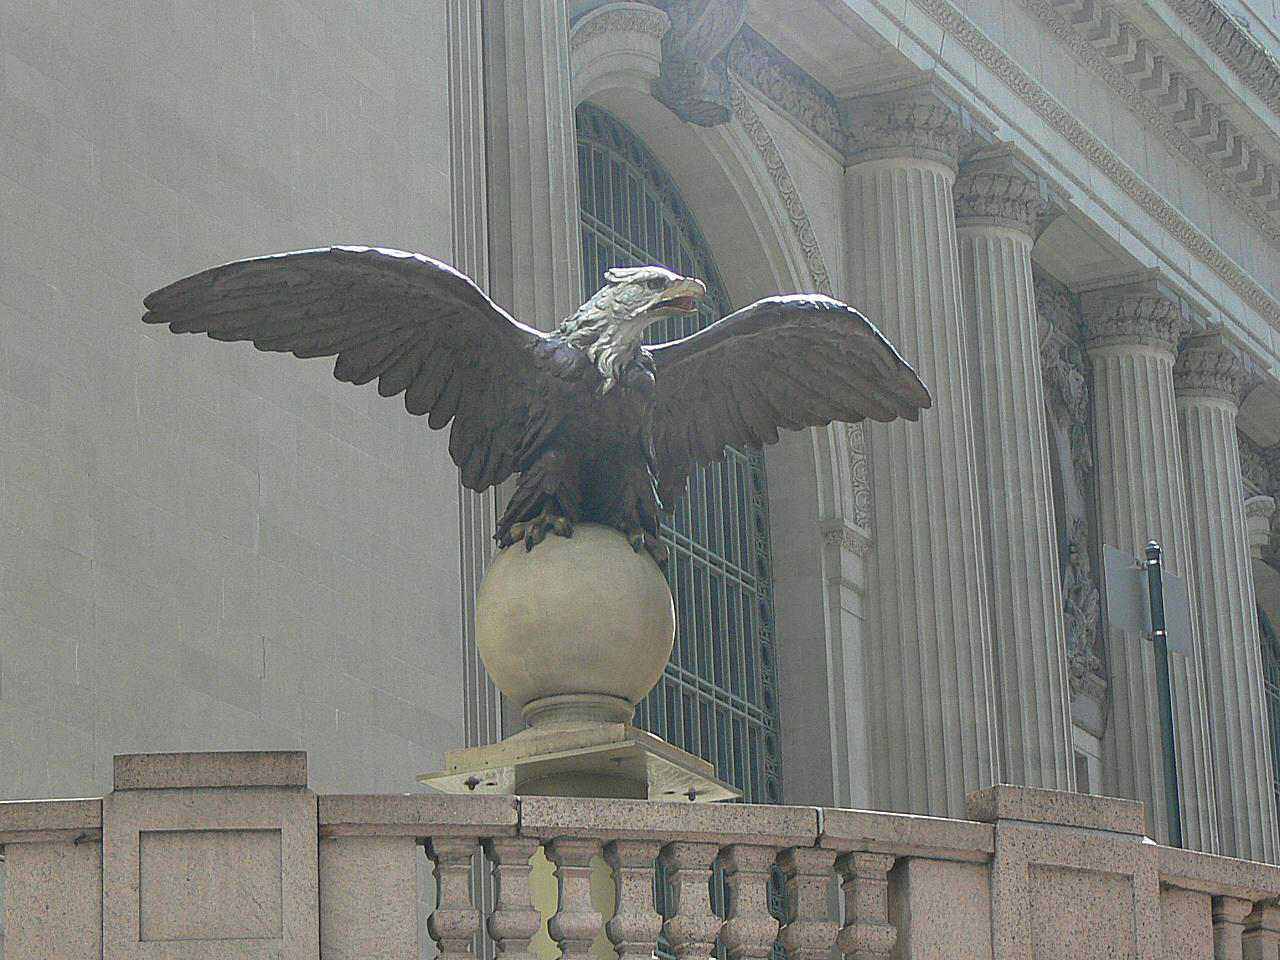 Front view of cast iron eagle high above an entrance to Grand Central Terminal.